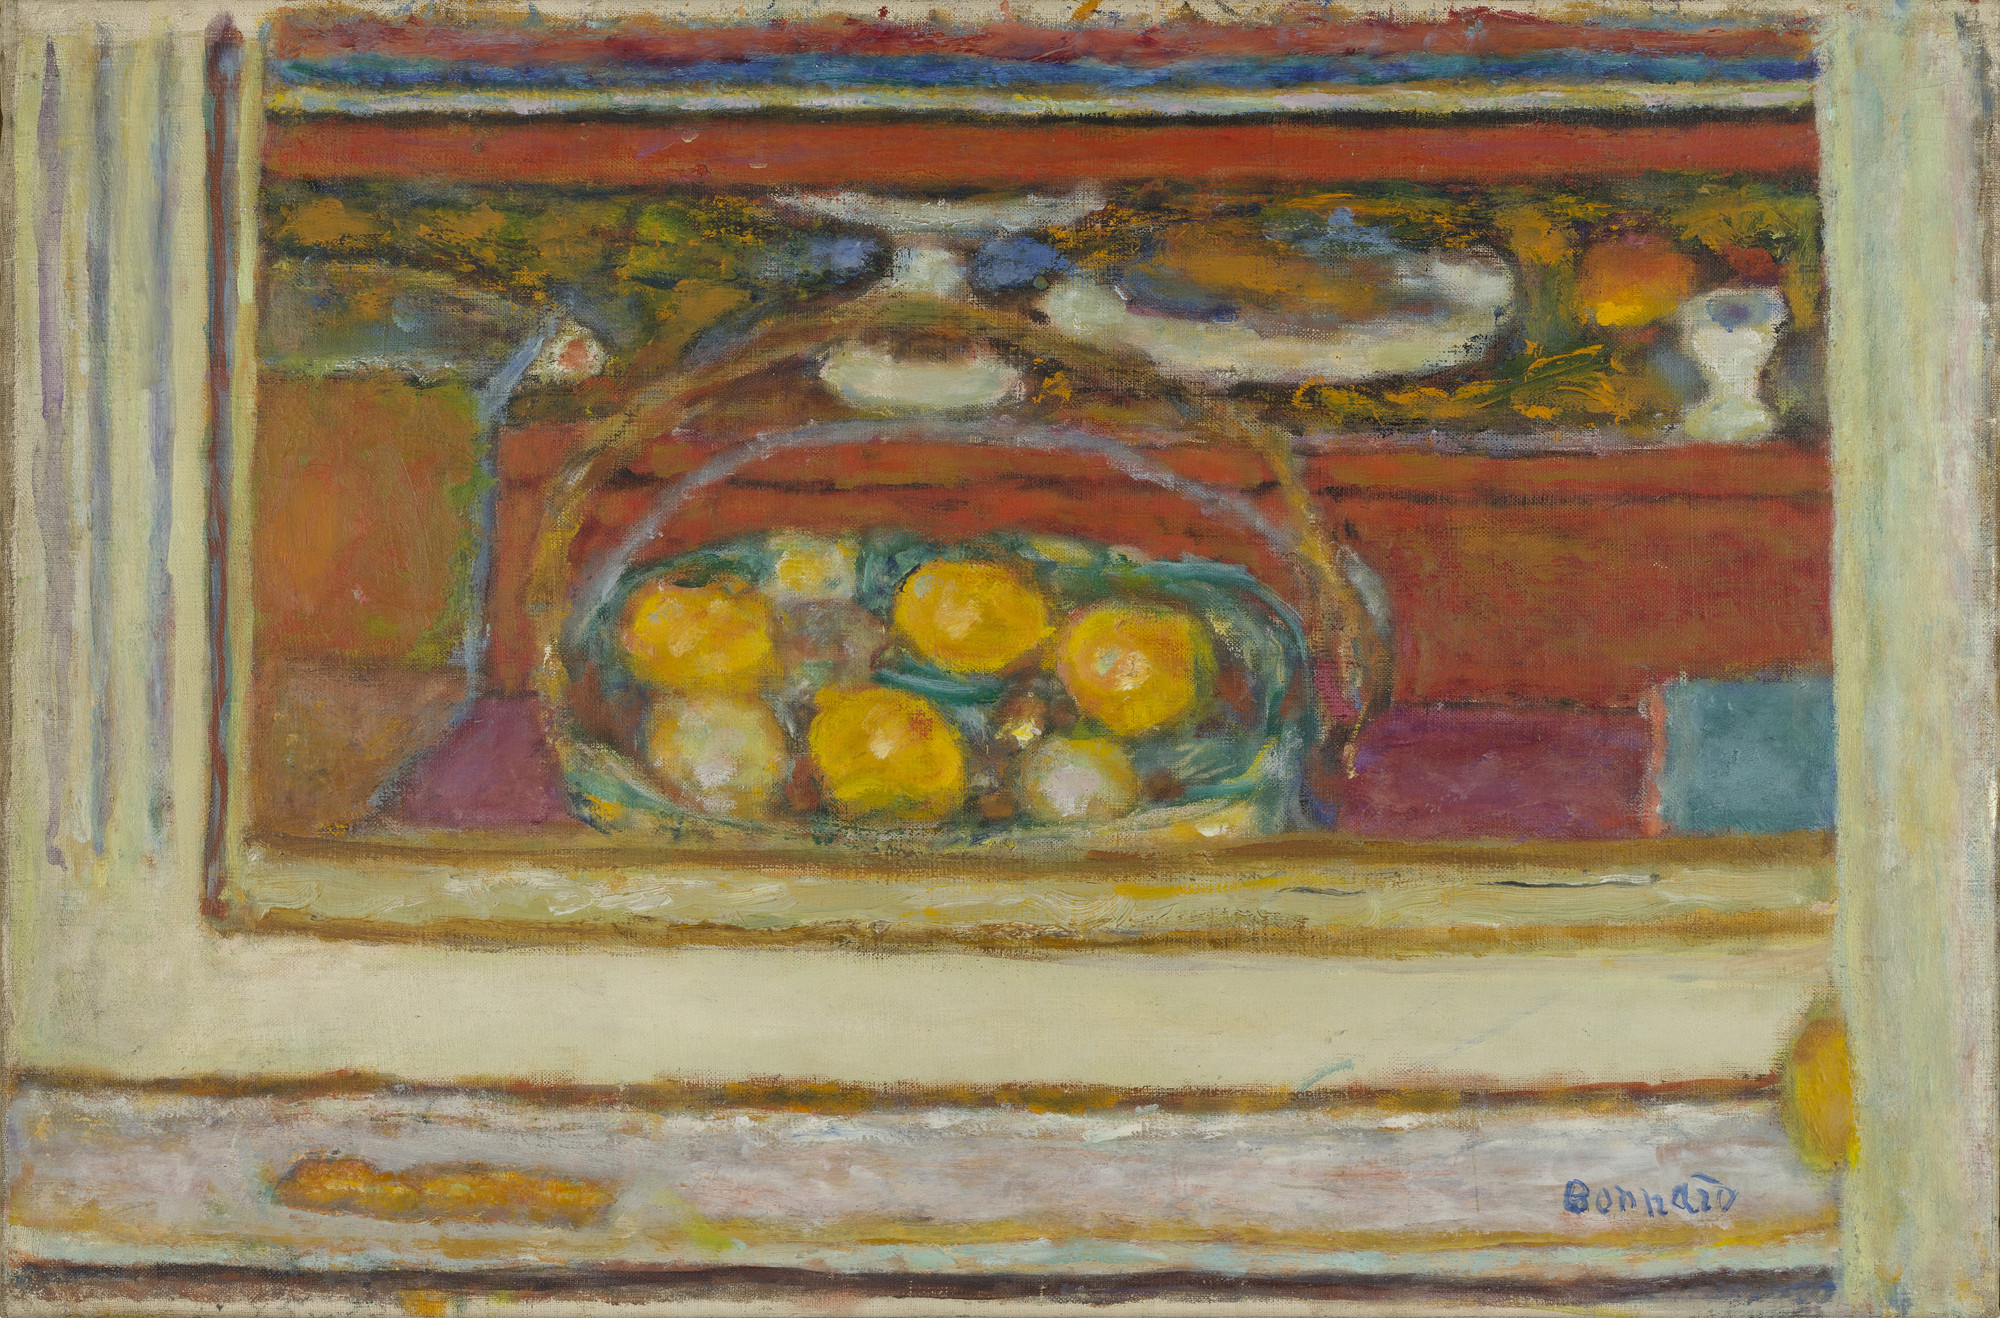 Pierre Bonnard. Basket of Fruit Reflected in a Mirror. c. 1944-46